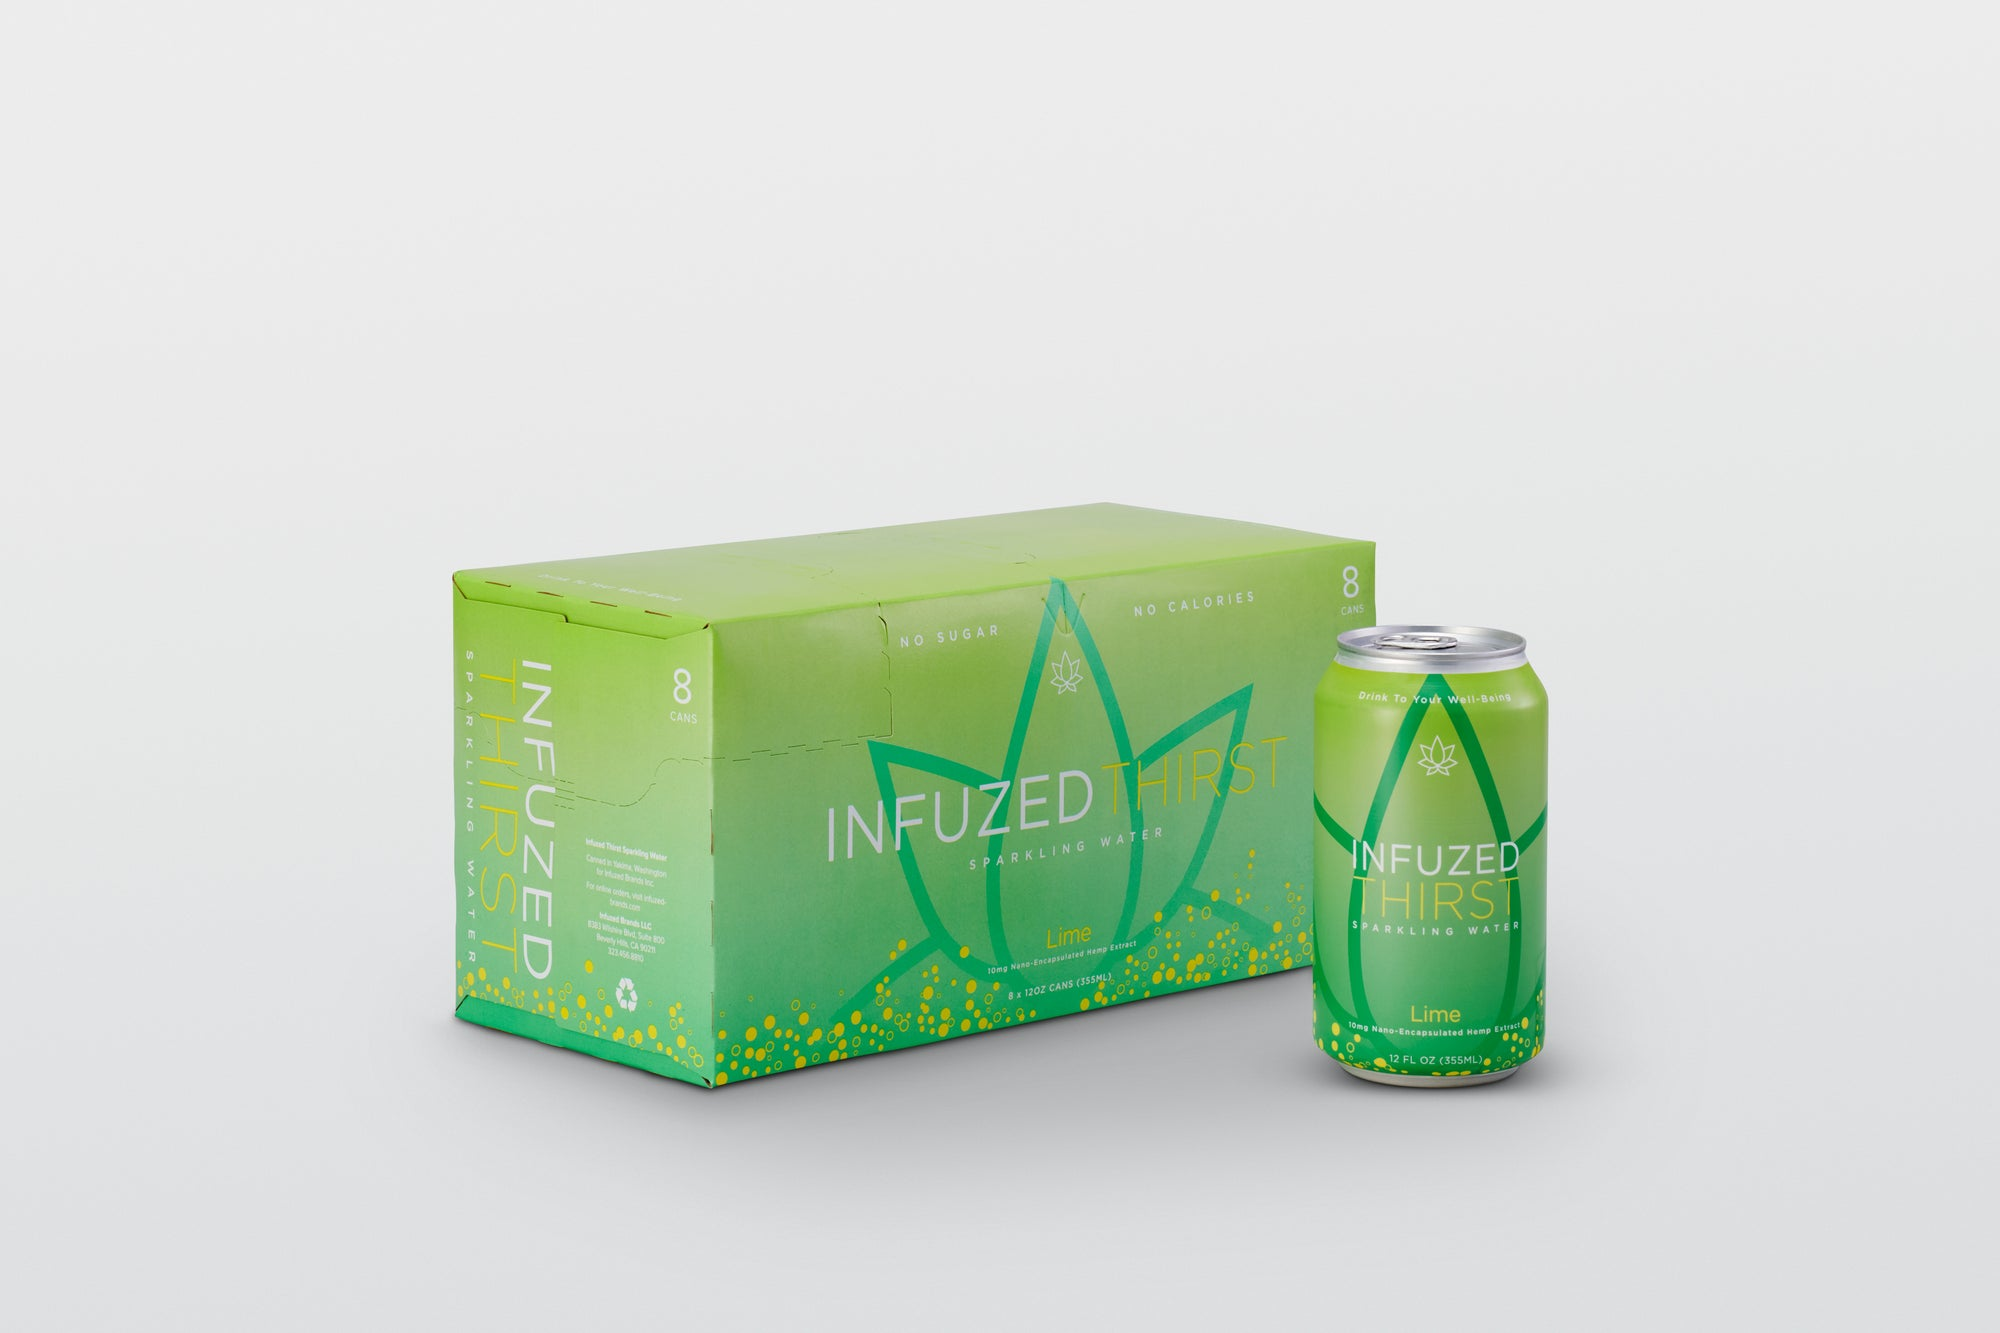 INFUZED THIRST Lime 8/pack